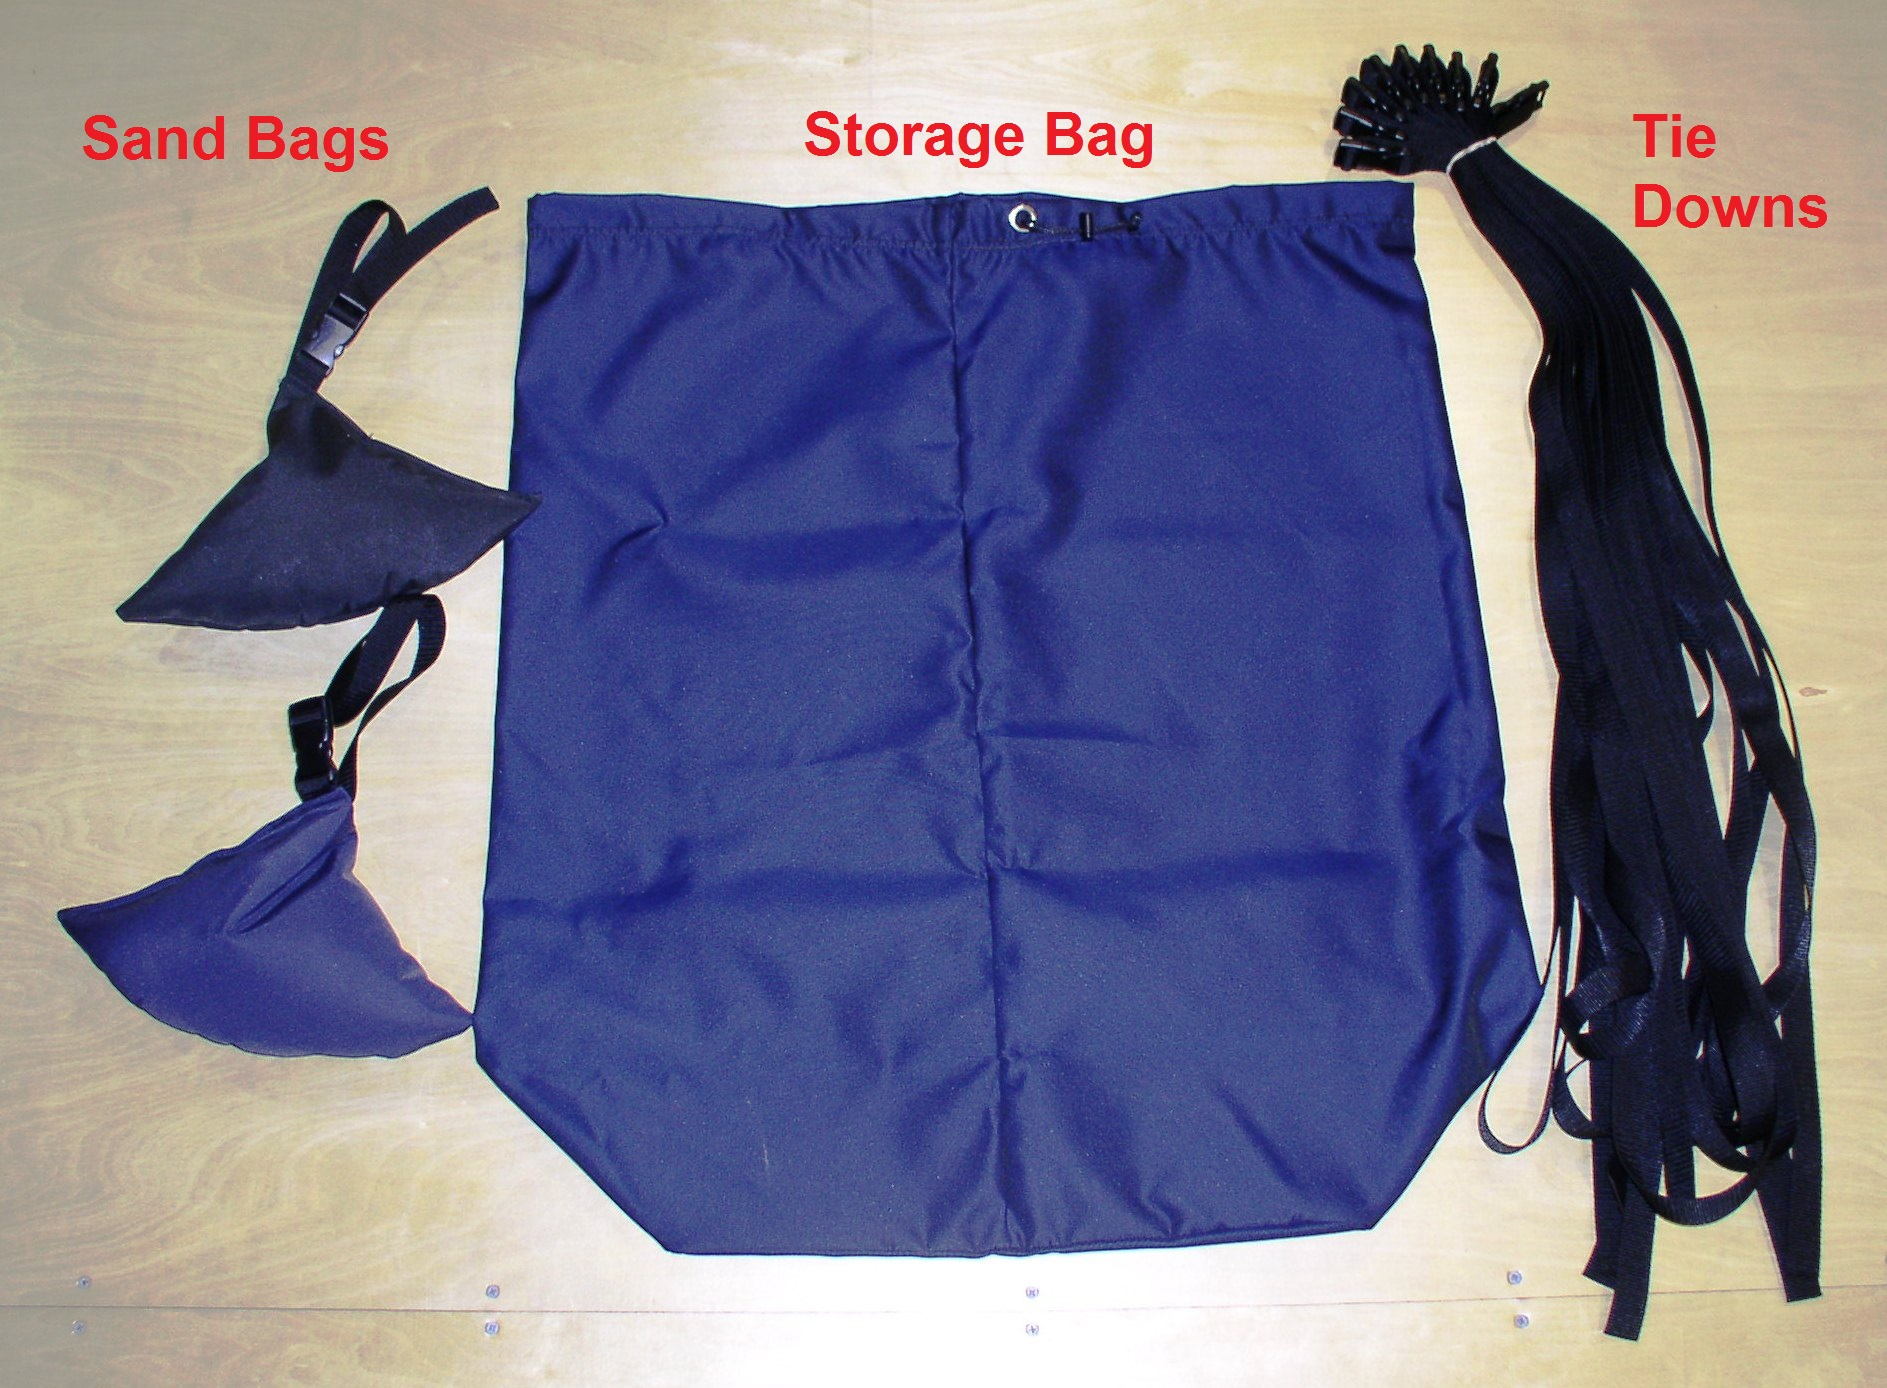 T Top Boat Cover Sand Bags Storage Bag Tie Downs Navy Blue